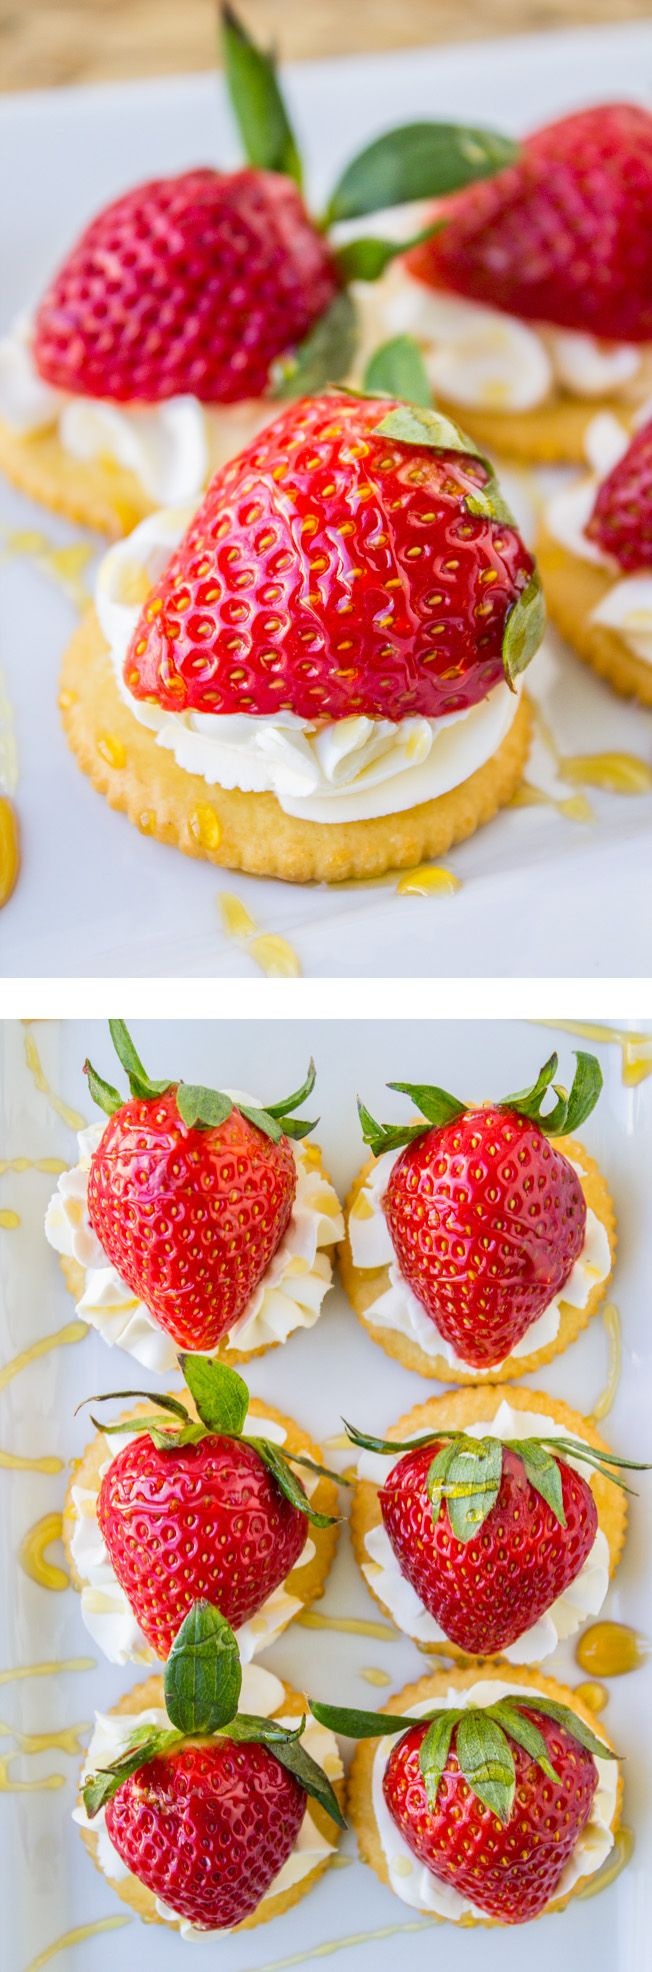 Easy Strawberries and Cream Appetizer // This 4-ingredient, stupid-easy recipe is the perfect appetizer for Easter!